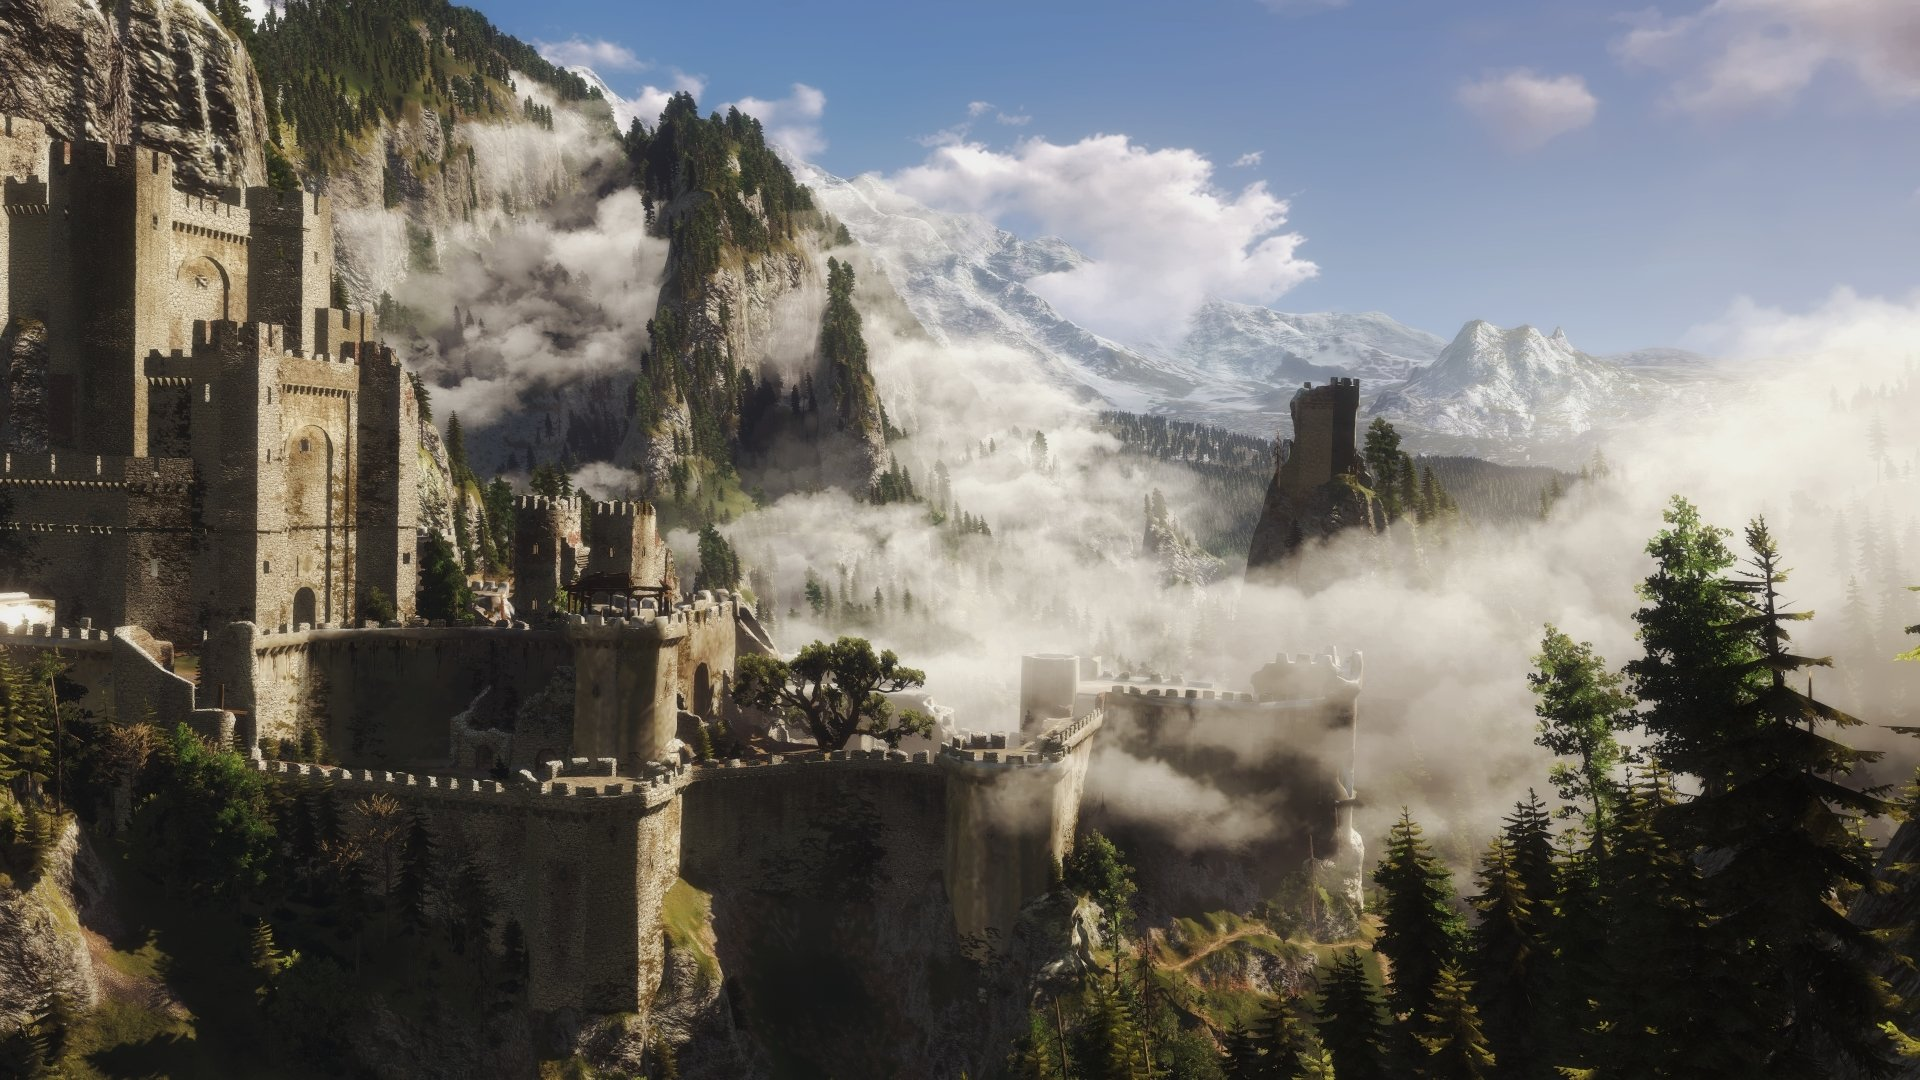 The witcher 3 wild hunt 4k ultra hd wallpaper - The witcher wallpaper 4k ...